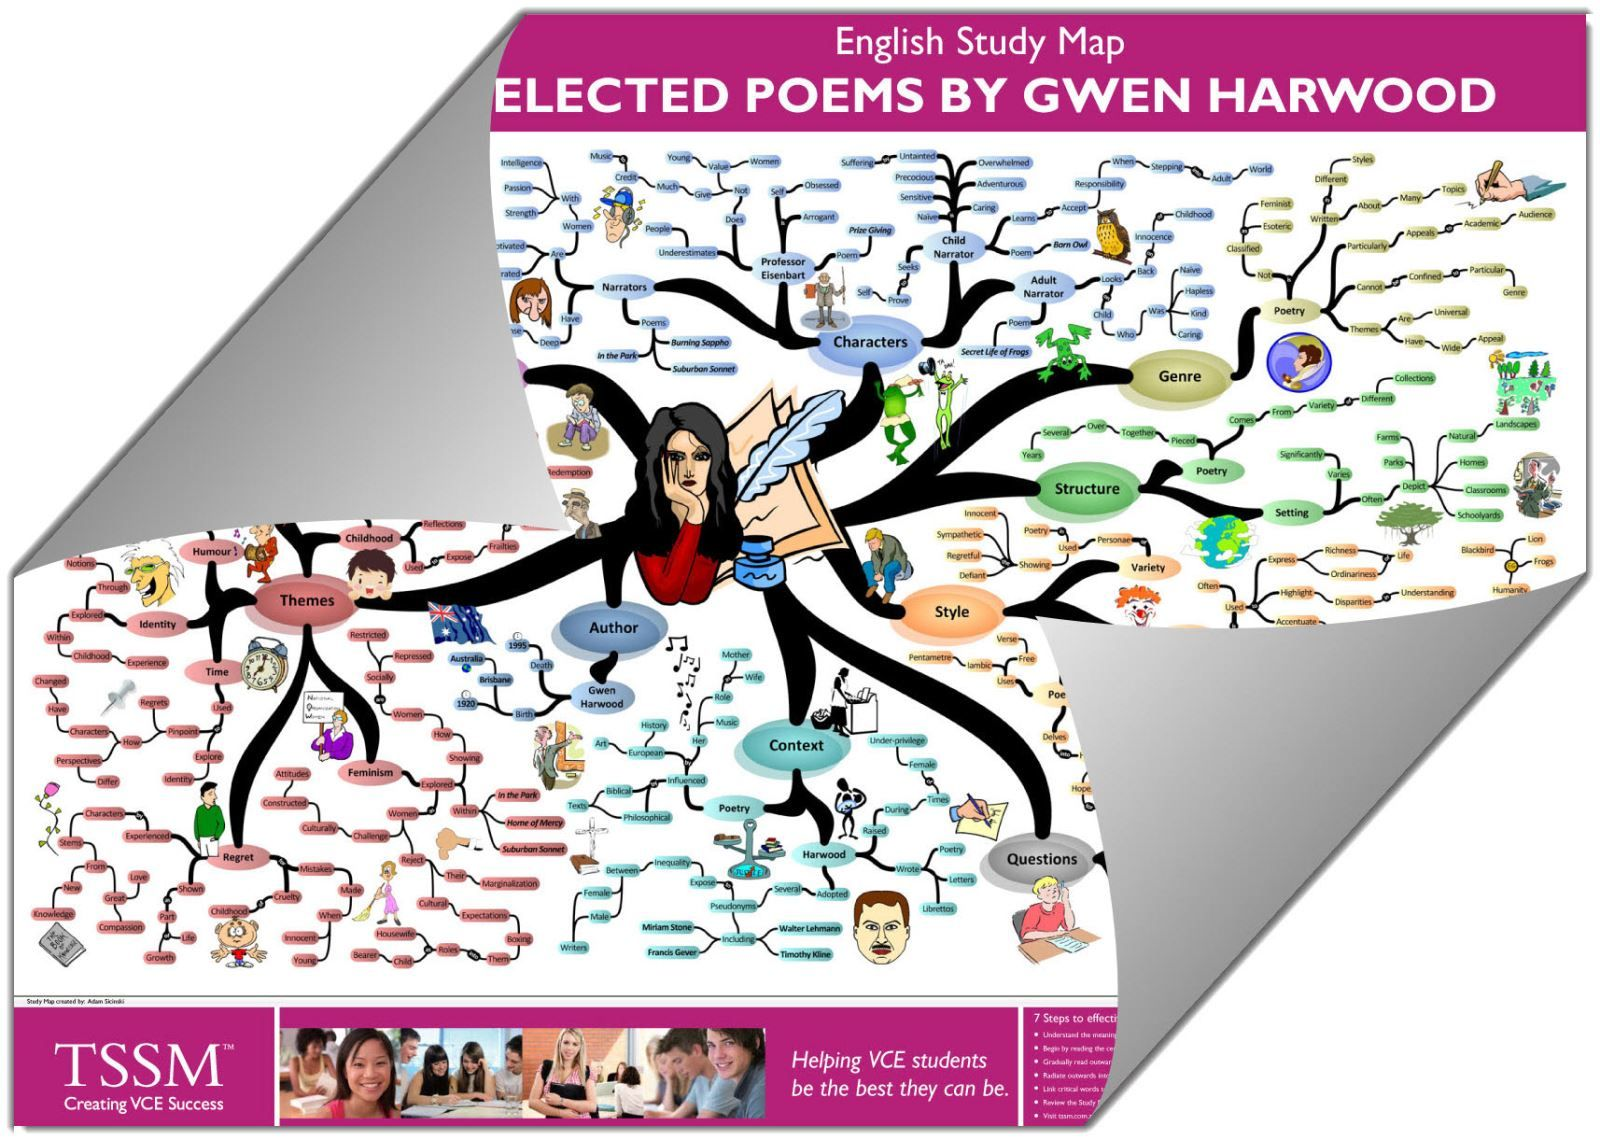 gwen harwood critical essay 'there are as many different ways of interpreting and valuing texts as there are readers' one way in which we can read harwood's poetry is by considering the significance of the numerous religious imagery in her poems.